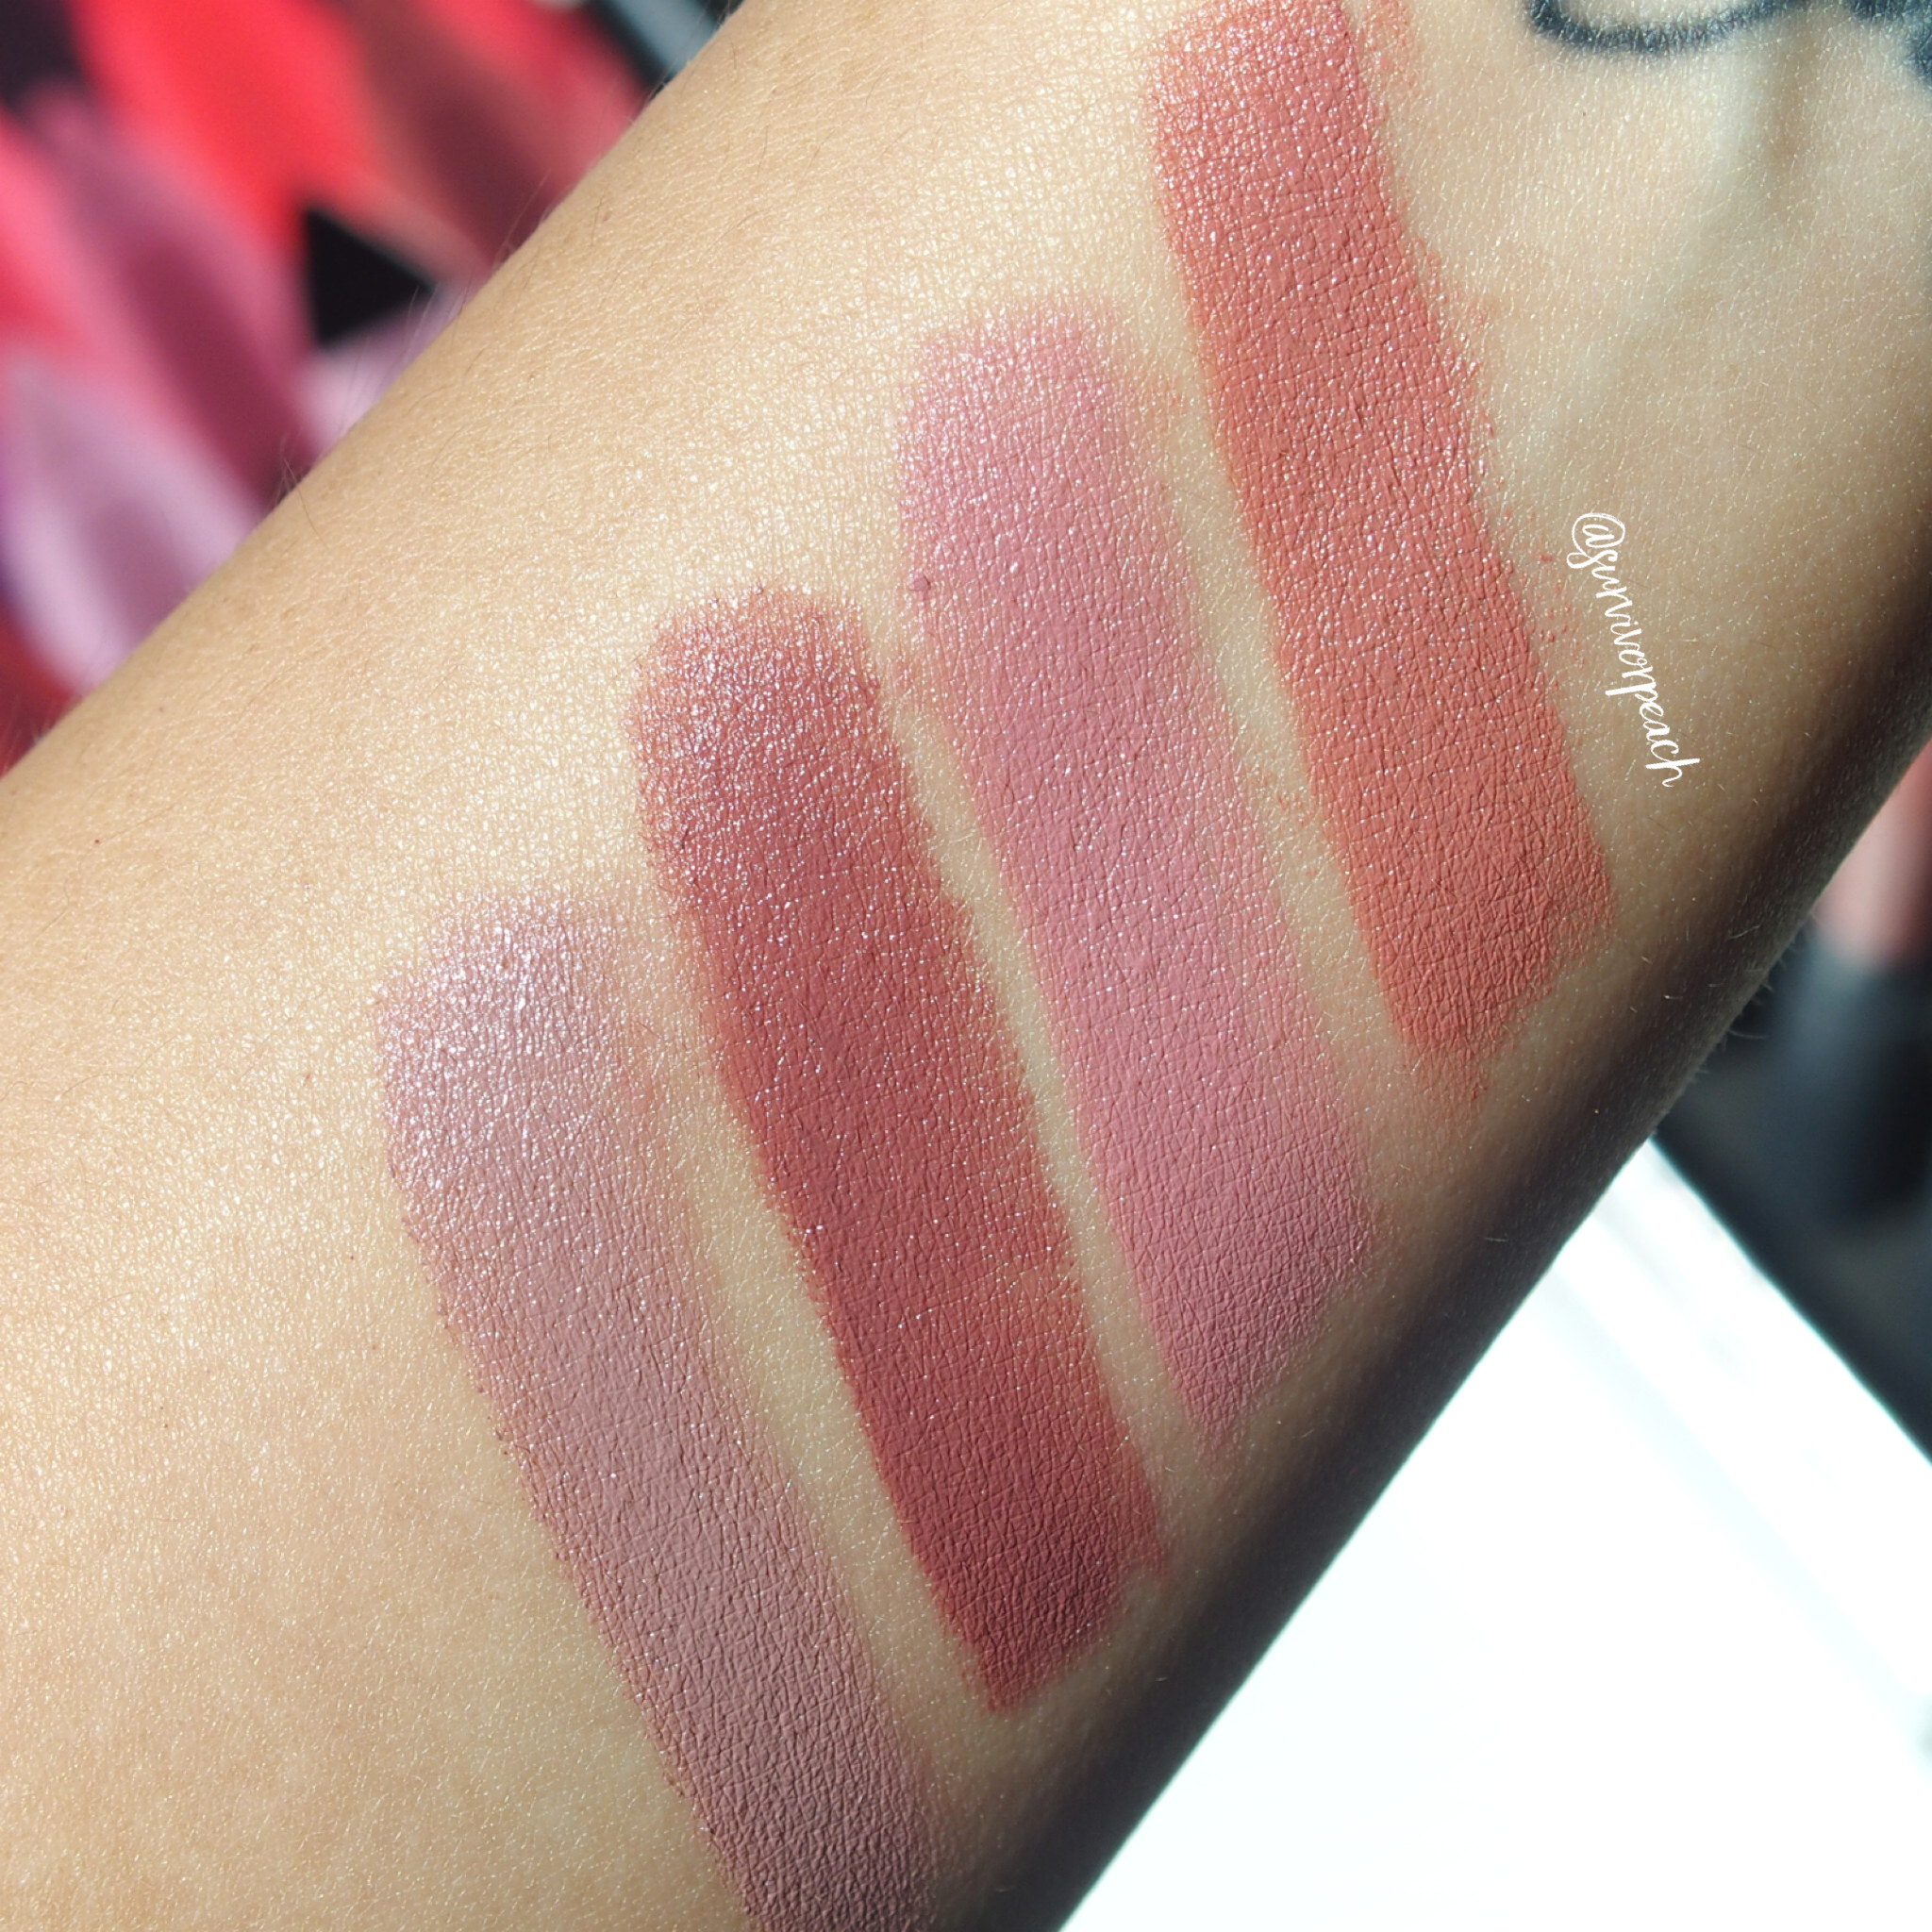 Swatches of the Bite Beauty Matte Creme Lip Crayon in shades Leche, Sugarcane, Glace, Cava